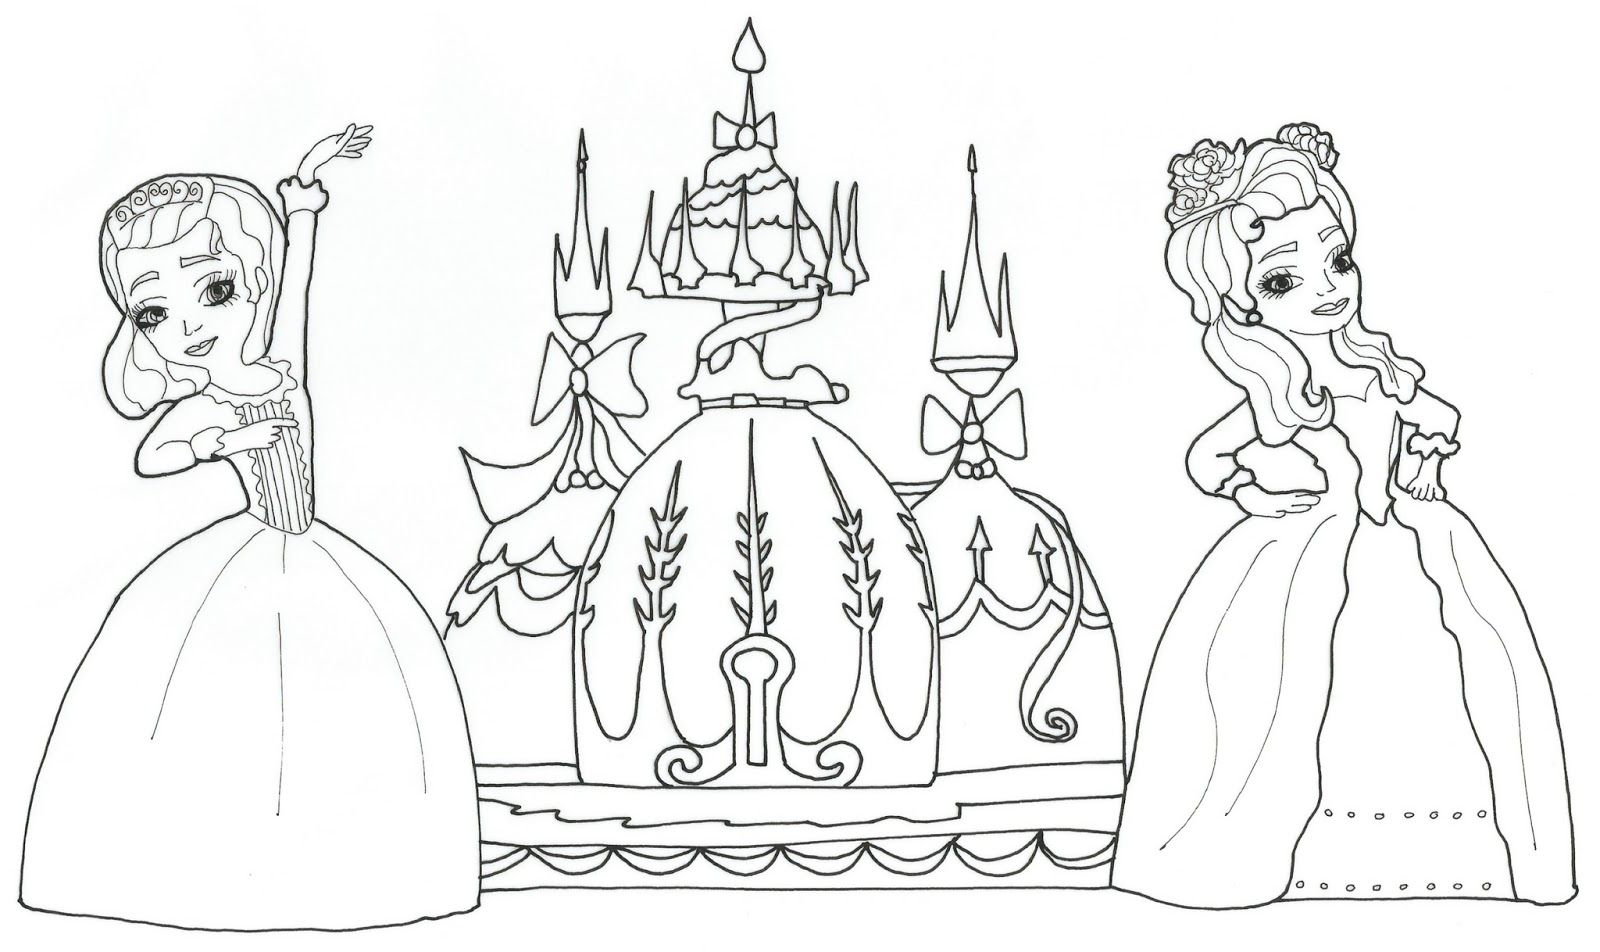 Sofia Coloring Pages Pdf : Sofia the first coloring pages home